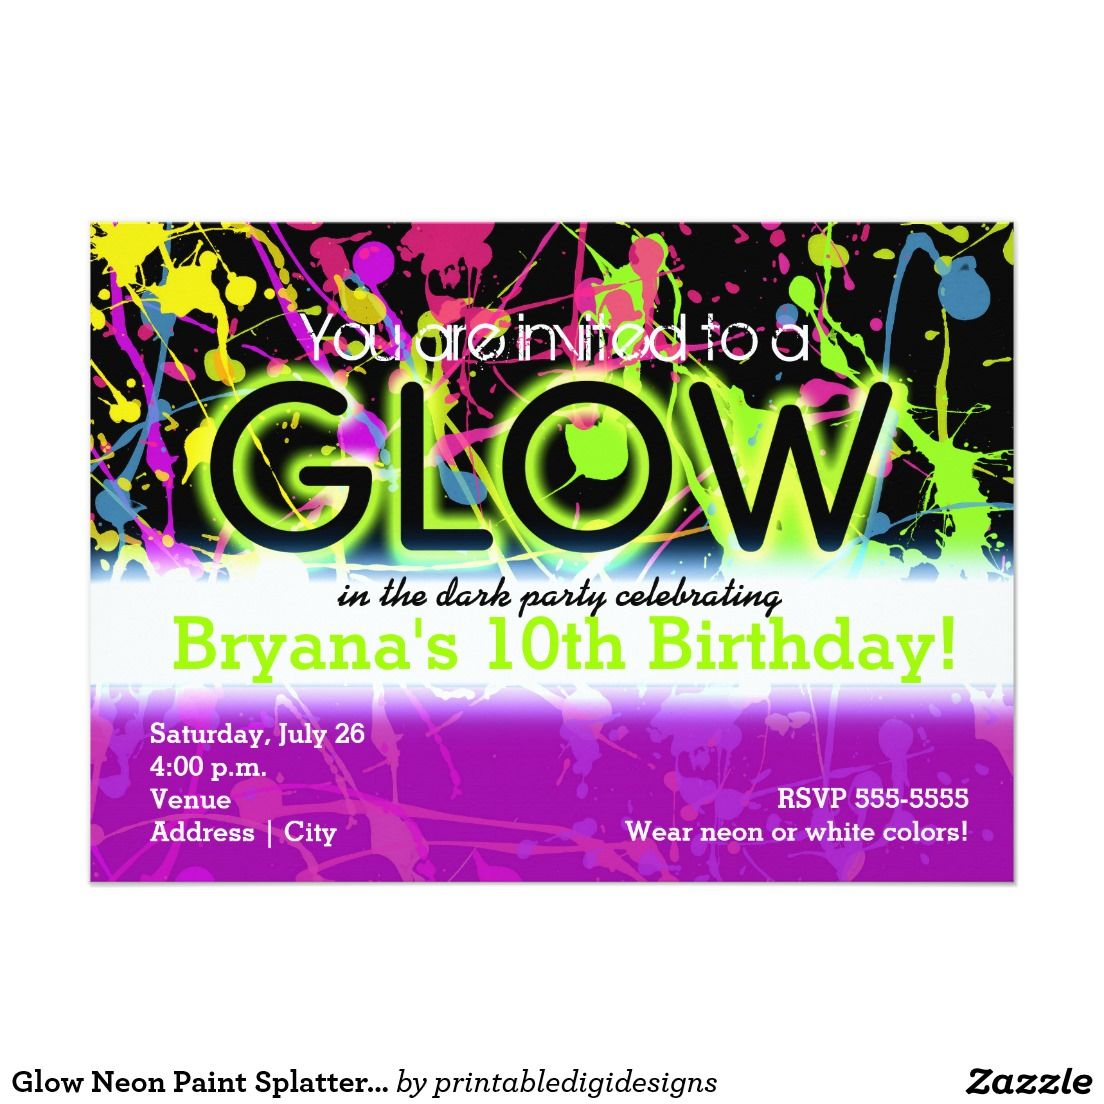 THIS IS THE WINNER! Glow Neon Paint Splatter Birthday Party ...